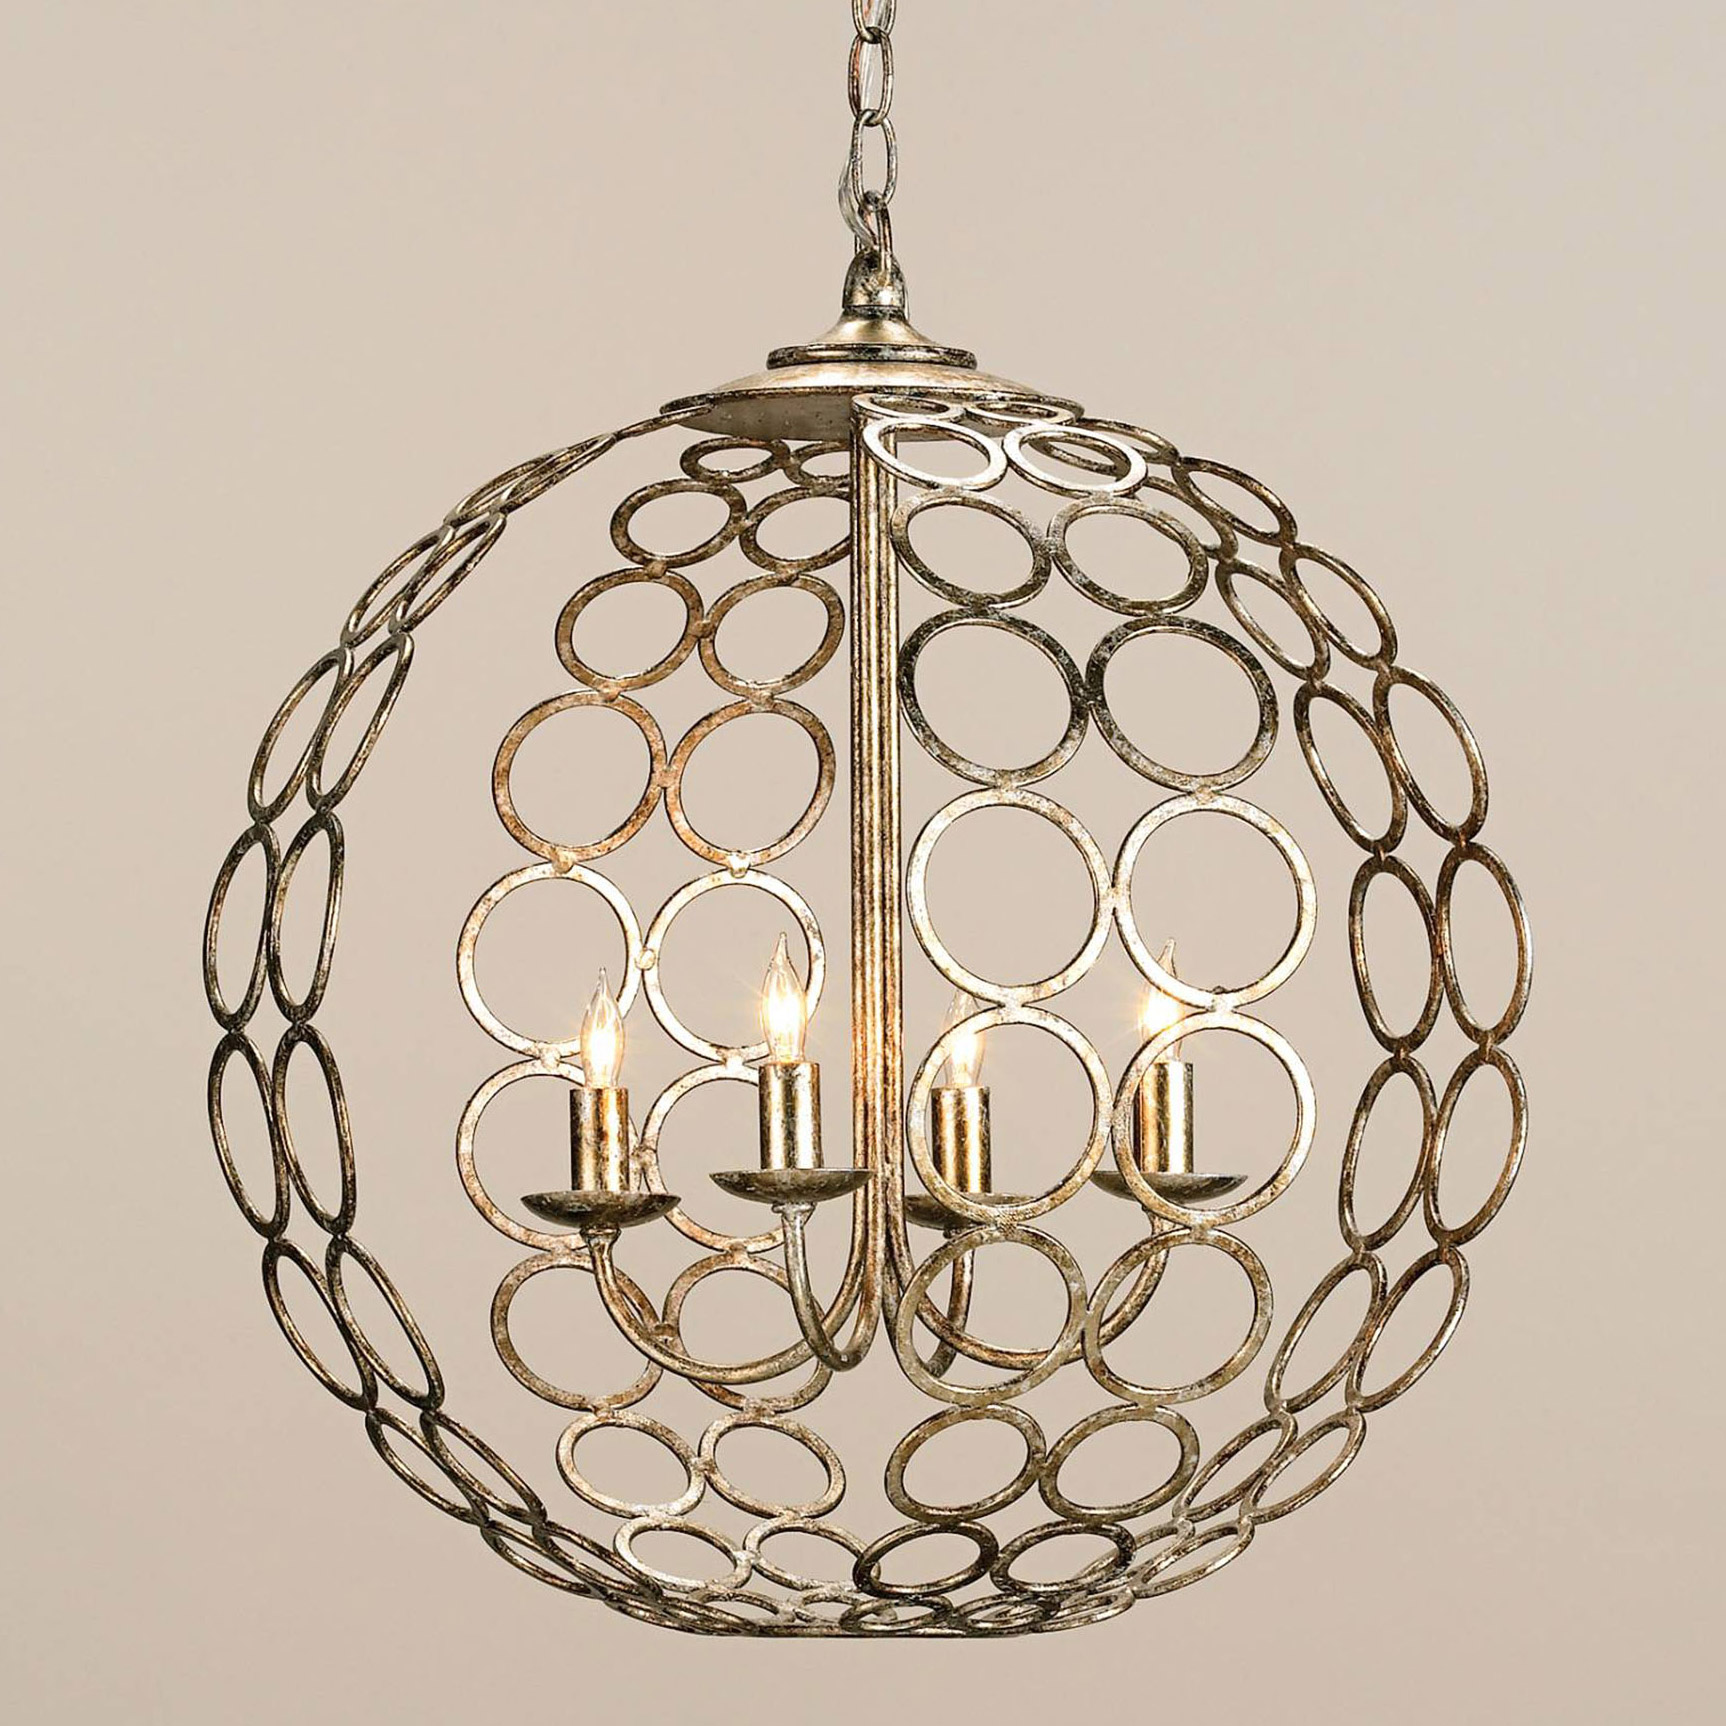 Awesome Currey And Company 9961 Tartufo Orb Chandelier